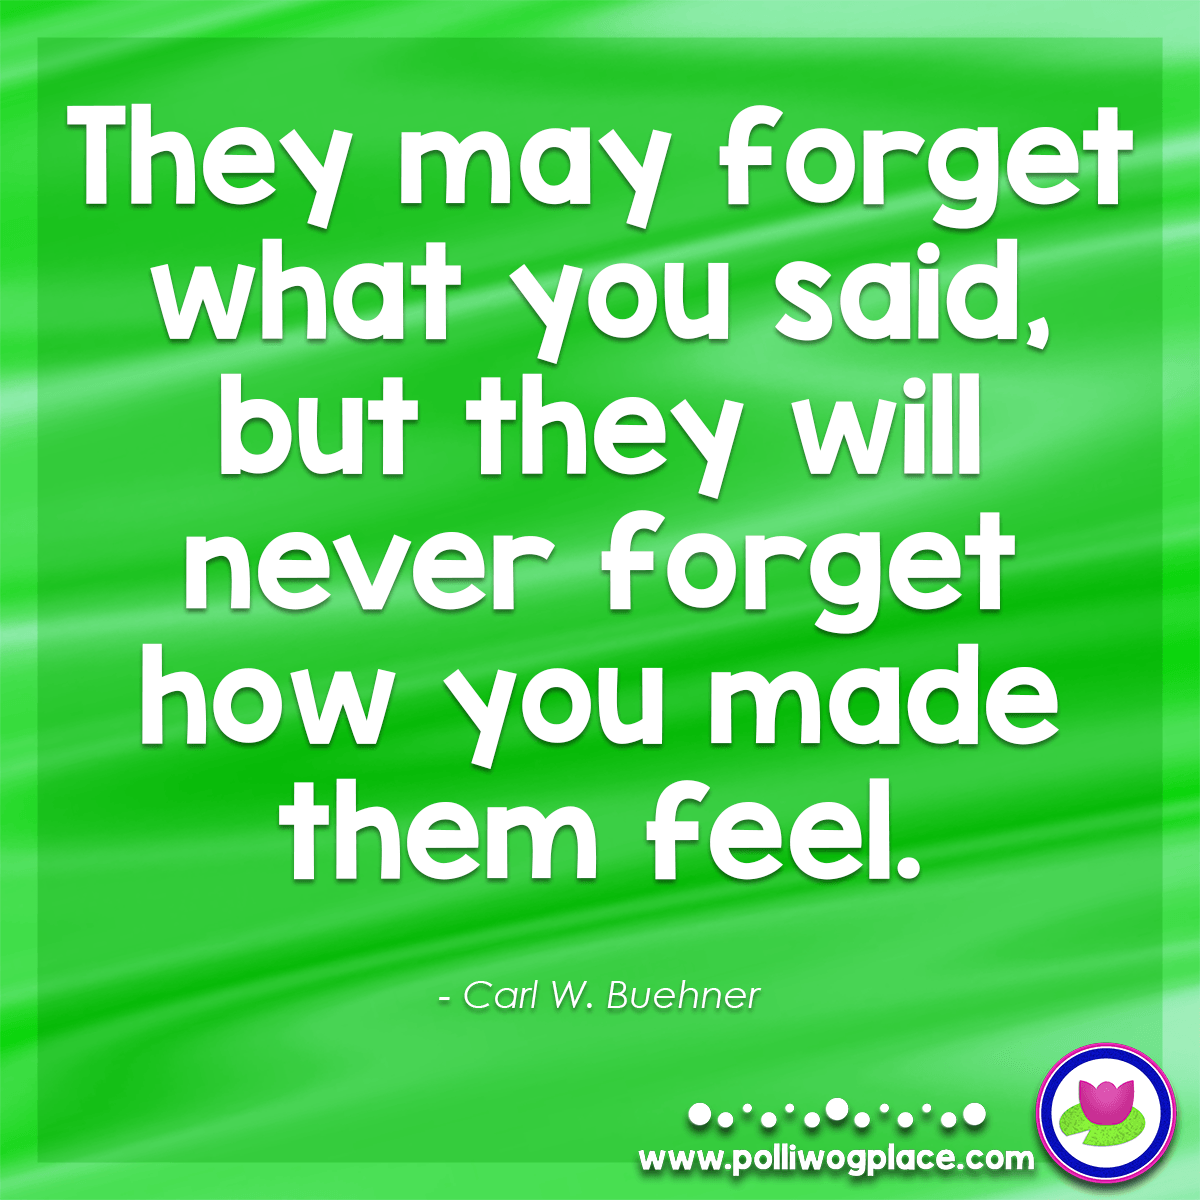 Quote - They may forget what you said, but they will never forget how you made them feel